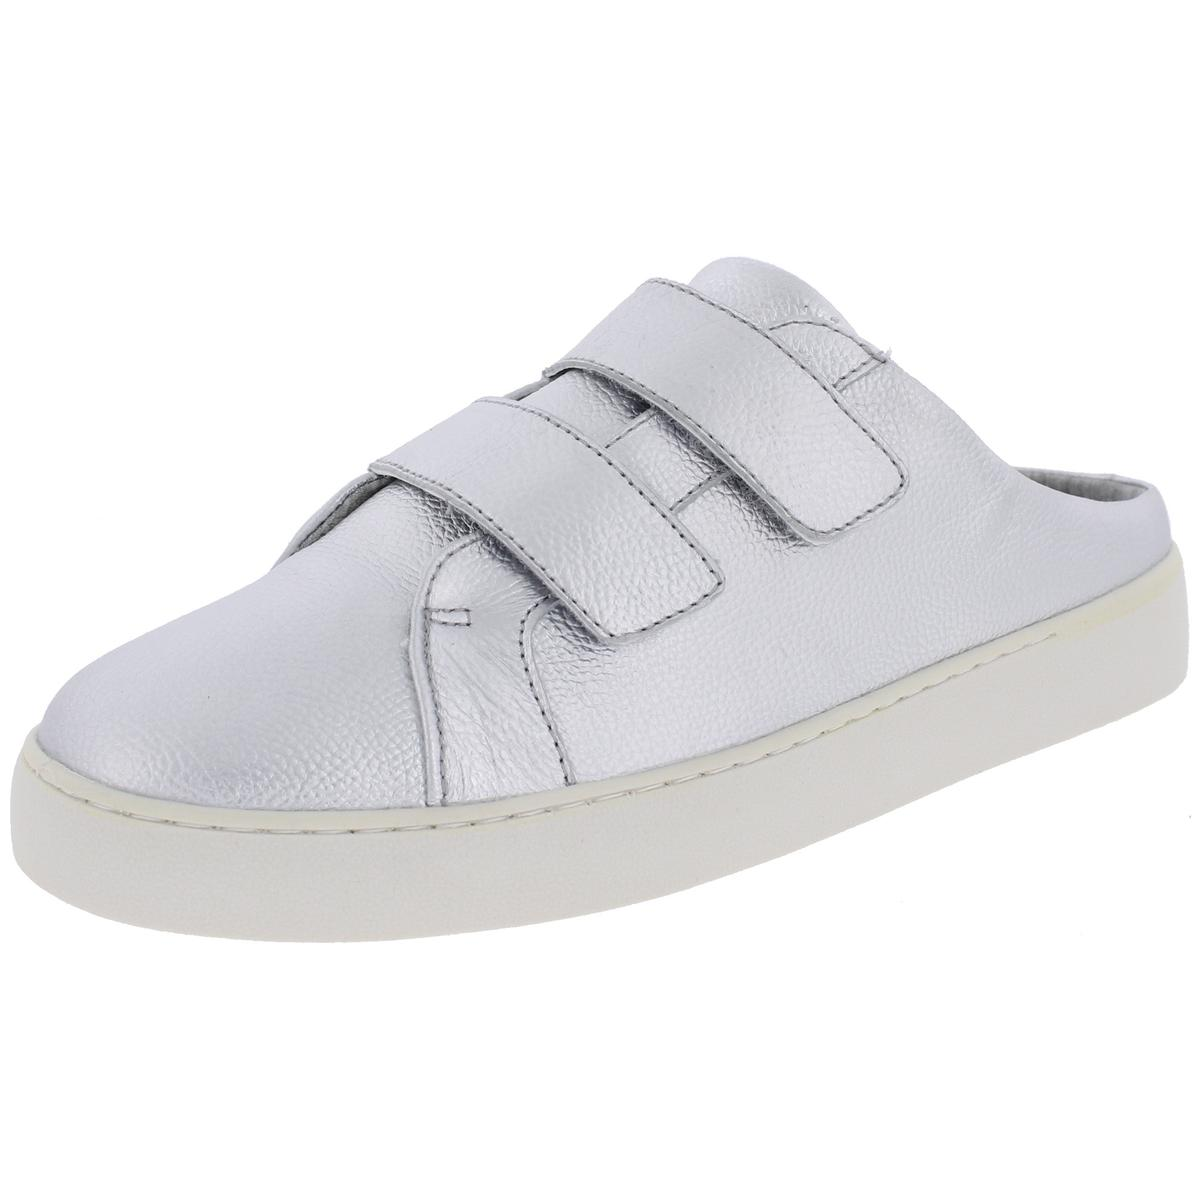 Nine West Womens Poeton Mules Round Toe Fashion Sneakers Shoes BHFO 2349